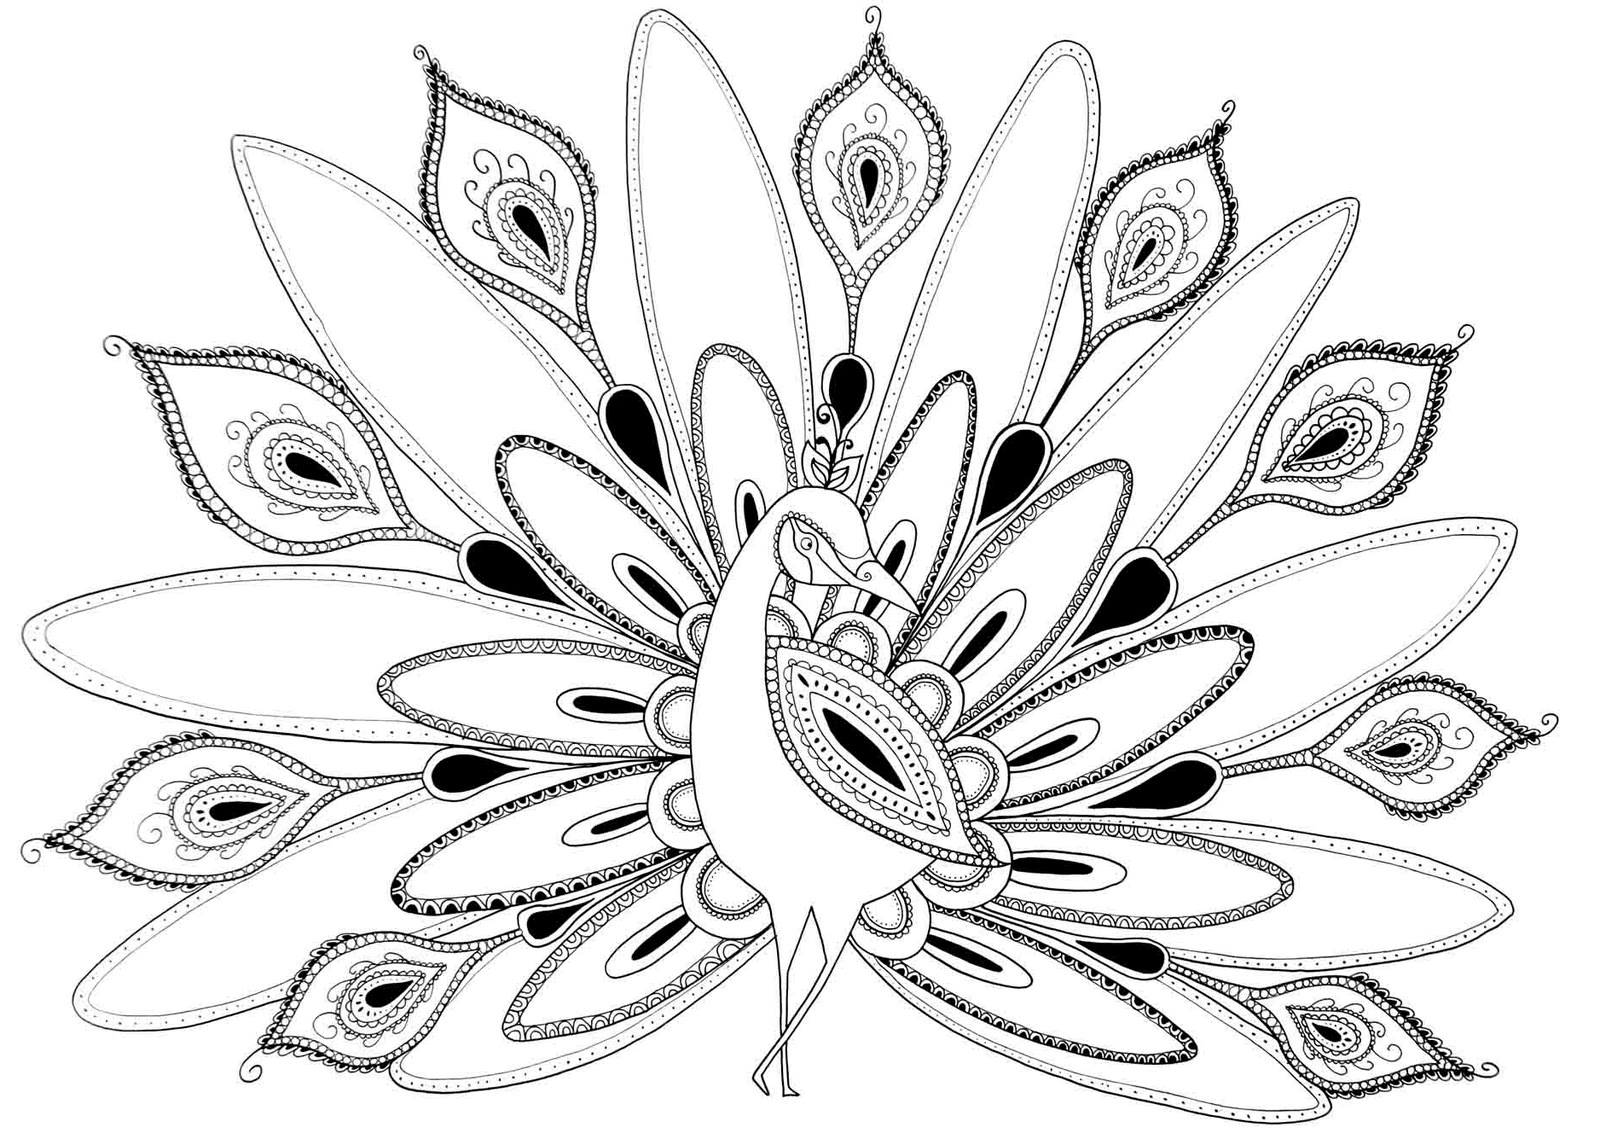 coloring pages of peacock peacock in flowers coloring page free printable coloring of peacock pages coloring